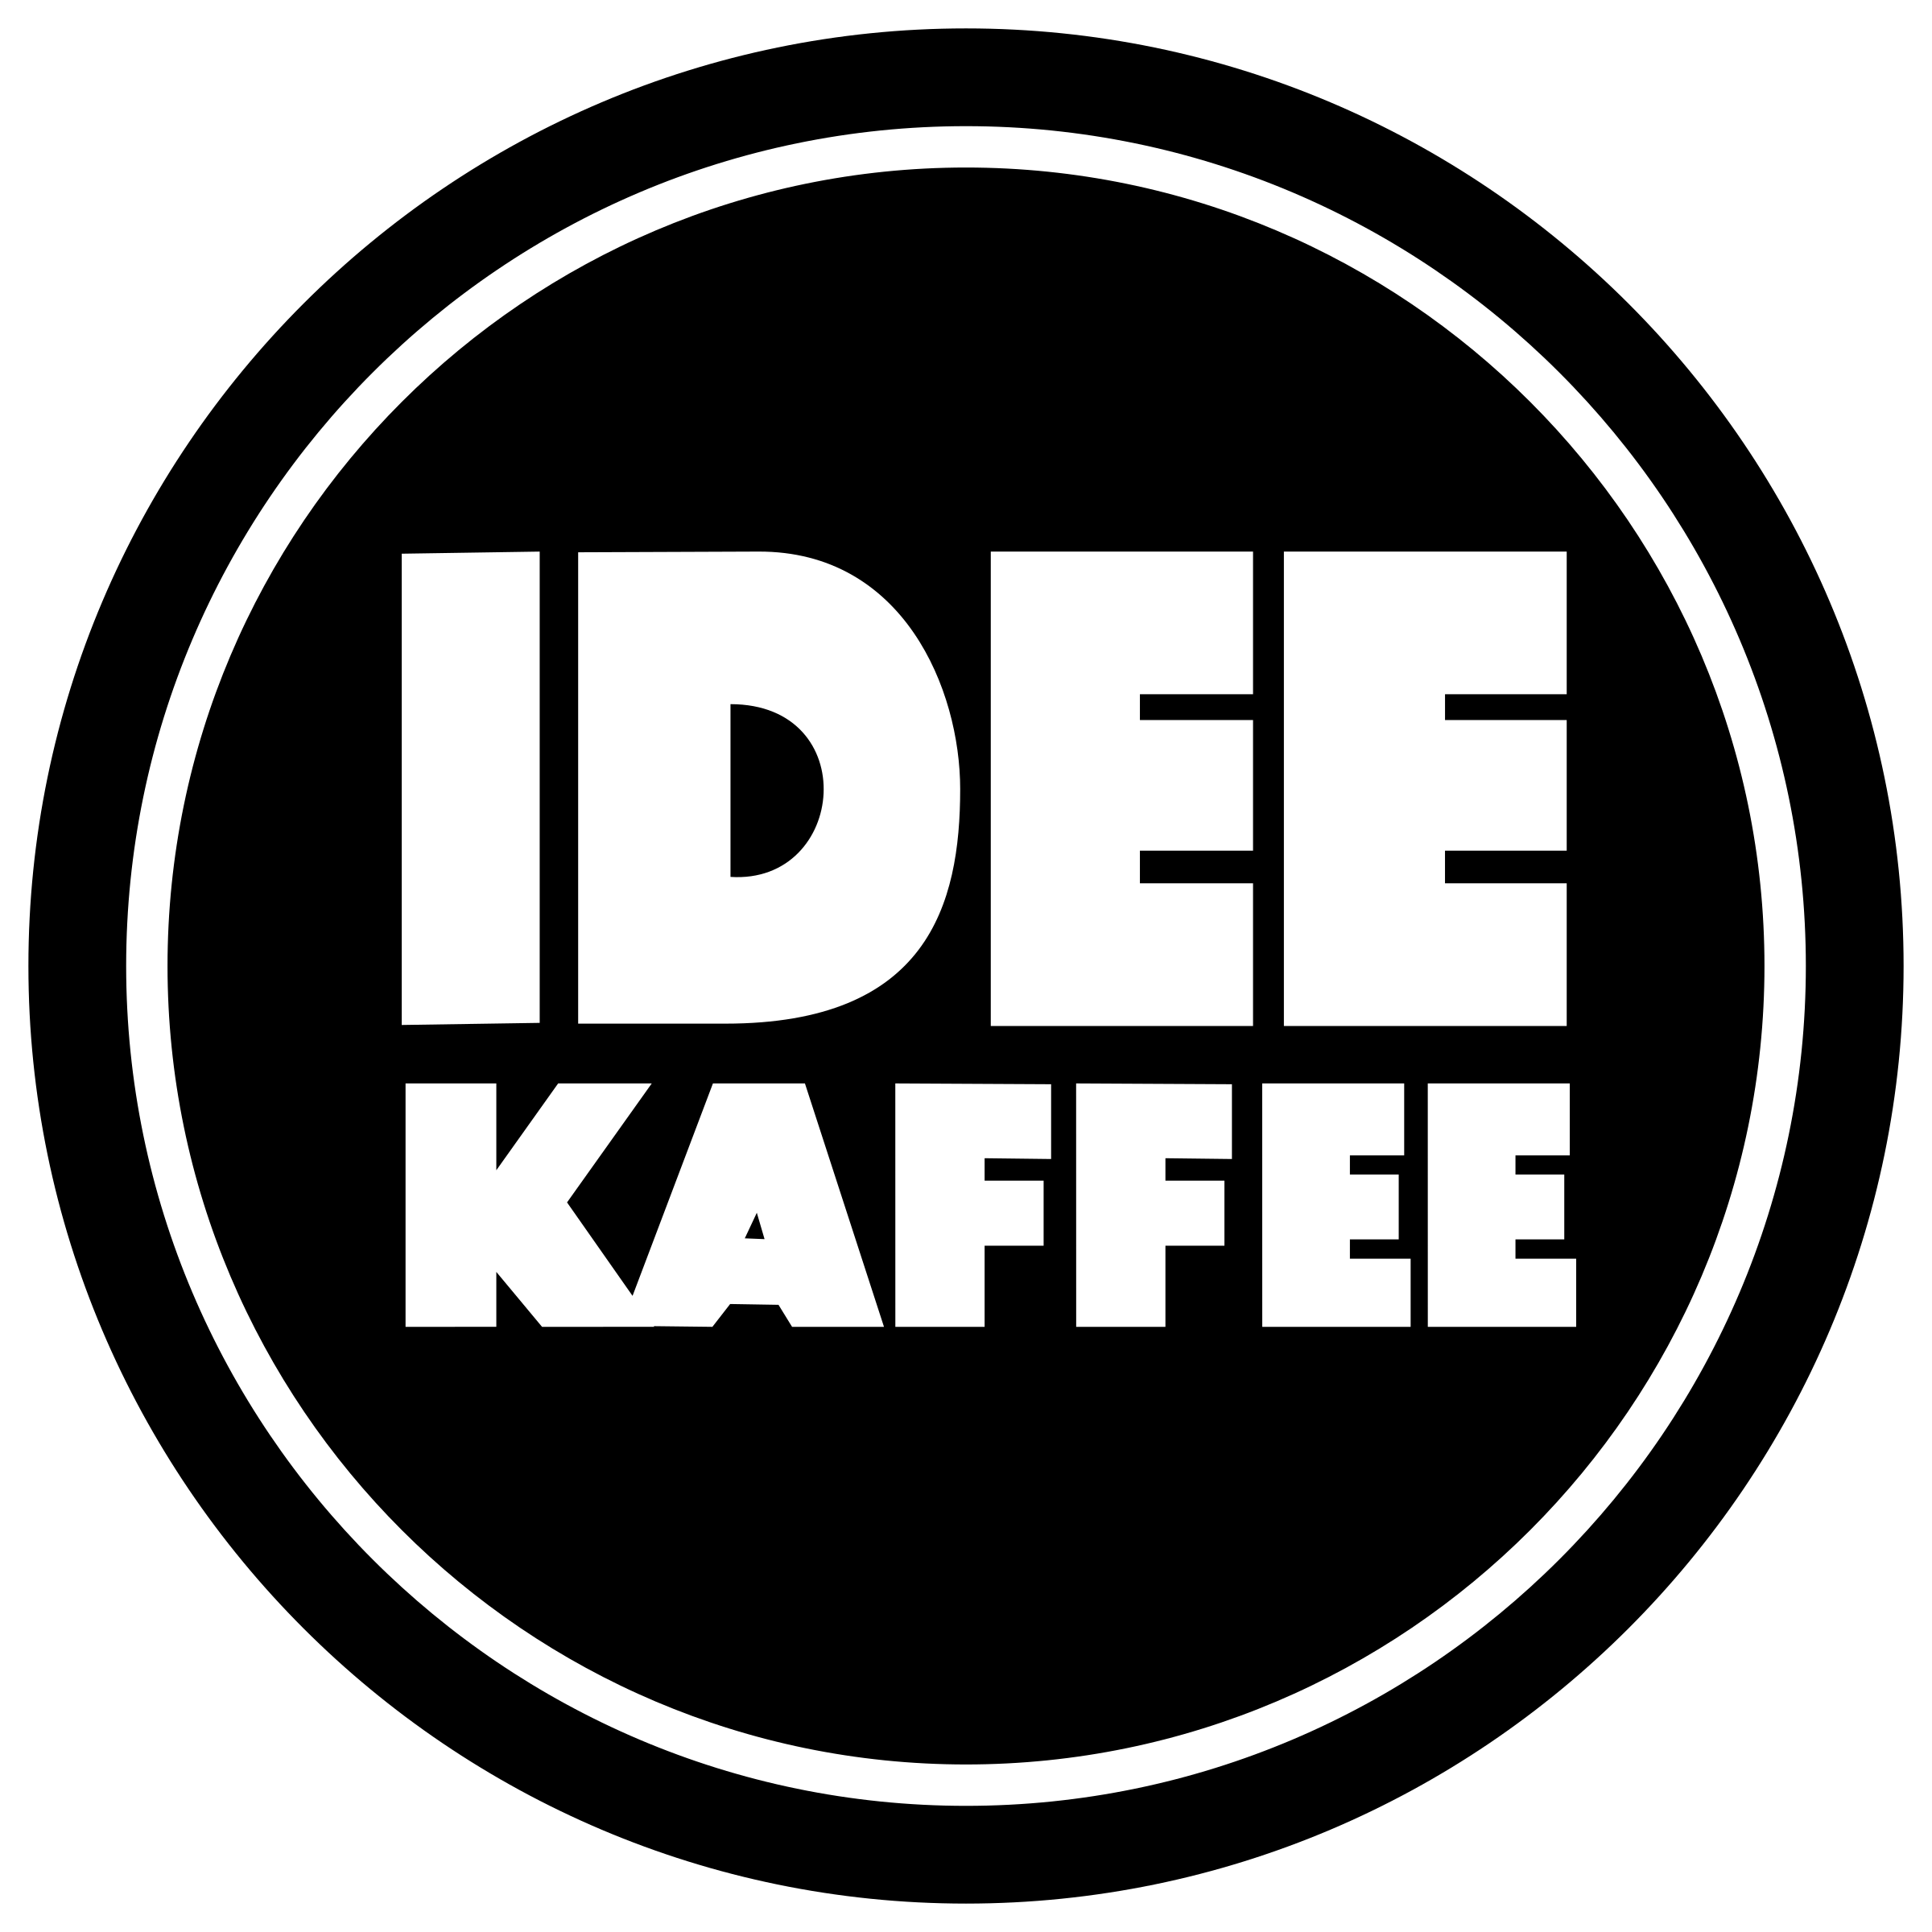 Idee Kaffee Logo PNG Transparent & SVG Vector - Freebie Supply